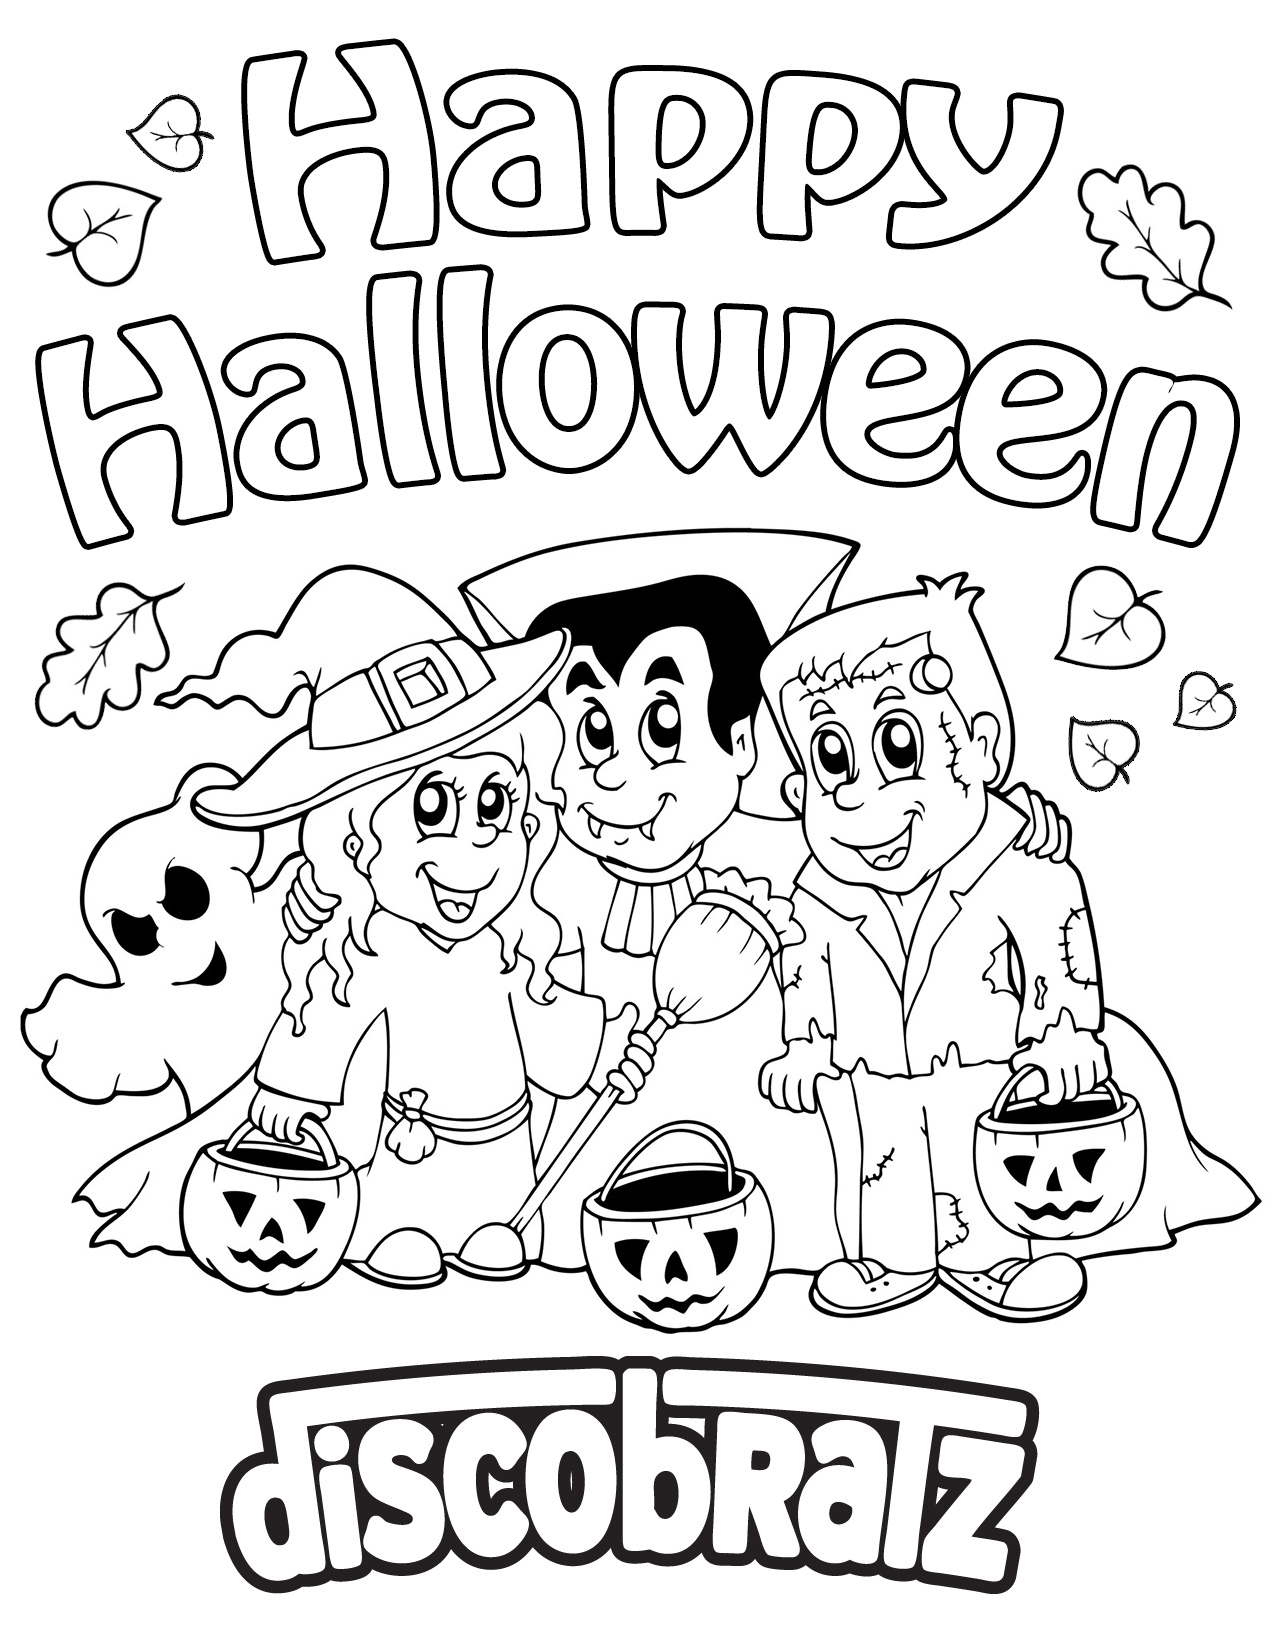 Boo! Get in Halloween Spirit with a New Coloring Page from